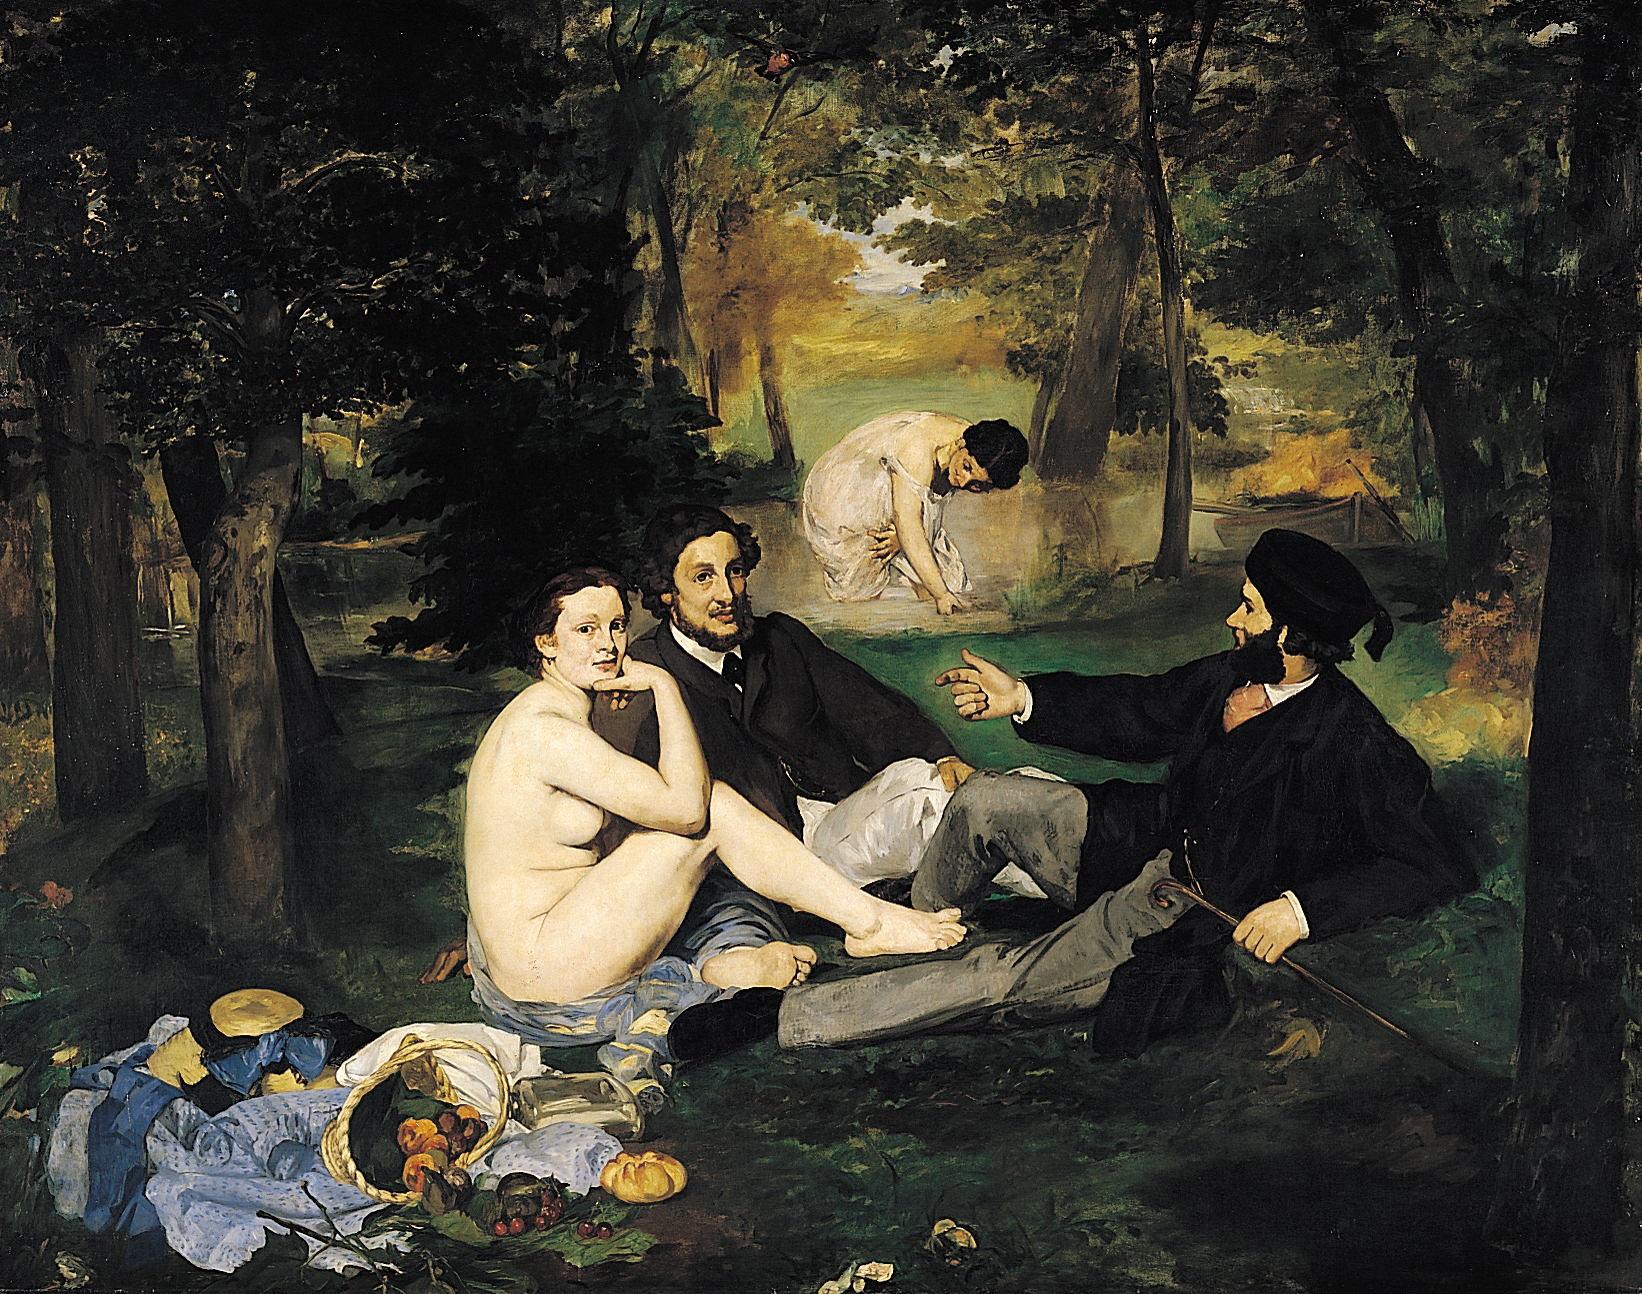 http://upload.wikimedia.org/wikipedia/commons/f/fc/%C3%89douard_Manet_-_Le_D%C3%A9jeuner_sur_l'herbe.jpg